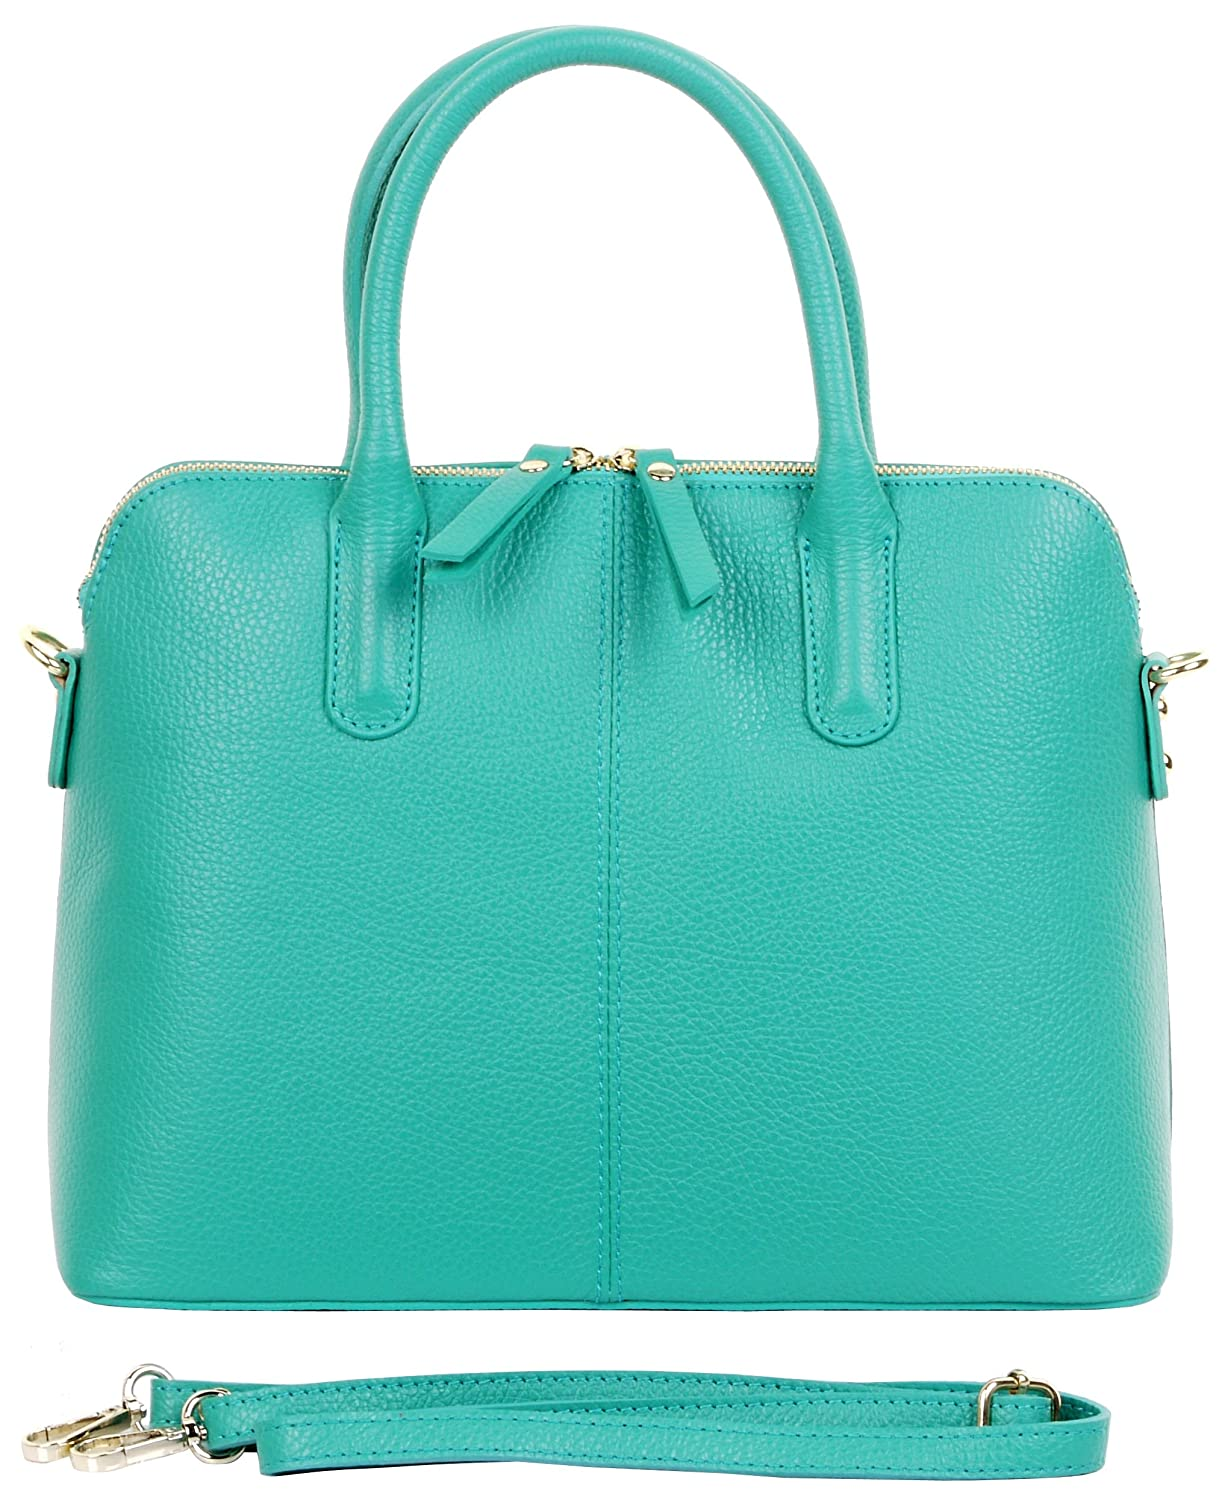 89132bbf9a1a Primo Sacchi® Ladies Italian Textured Leather Hand Made Bowling Style  Handbag Tote Grab Bag or Shoulder Bag. Includes a Branded Protective  Storage Bag